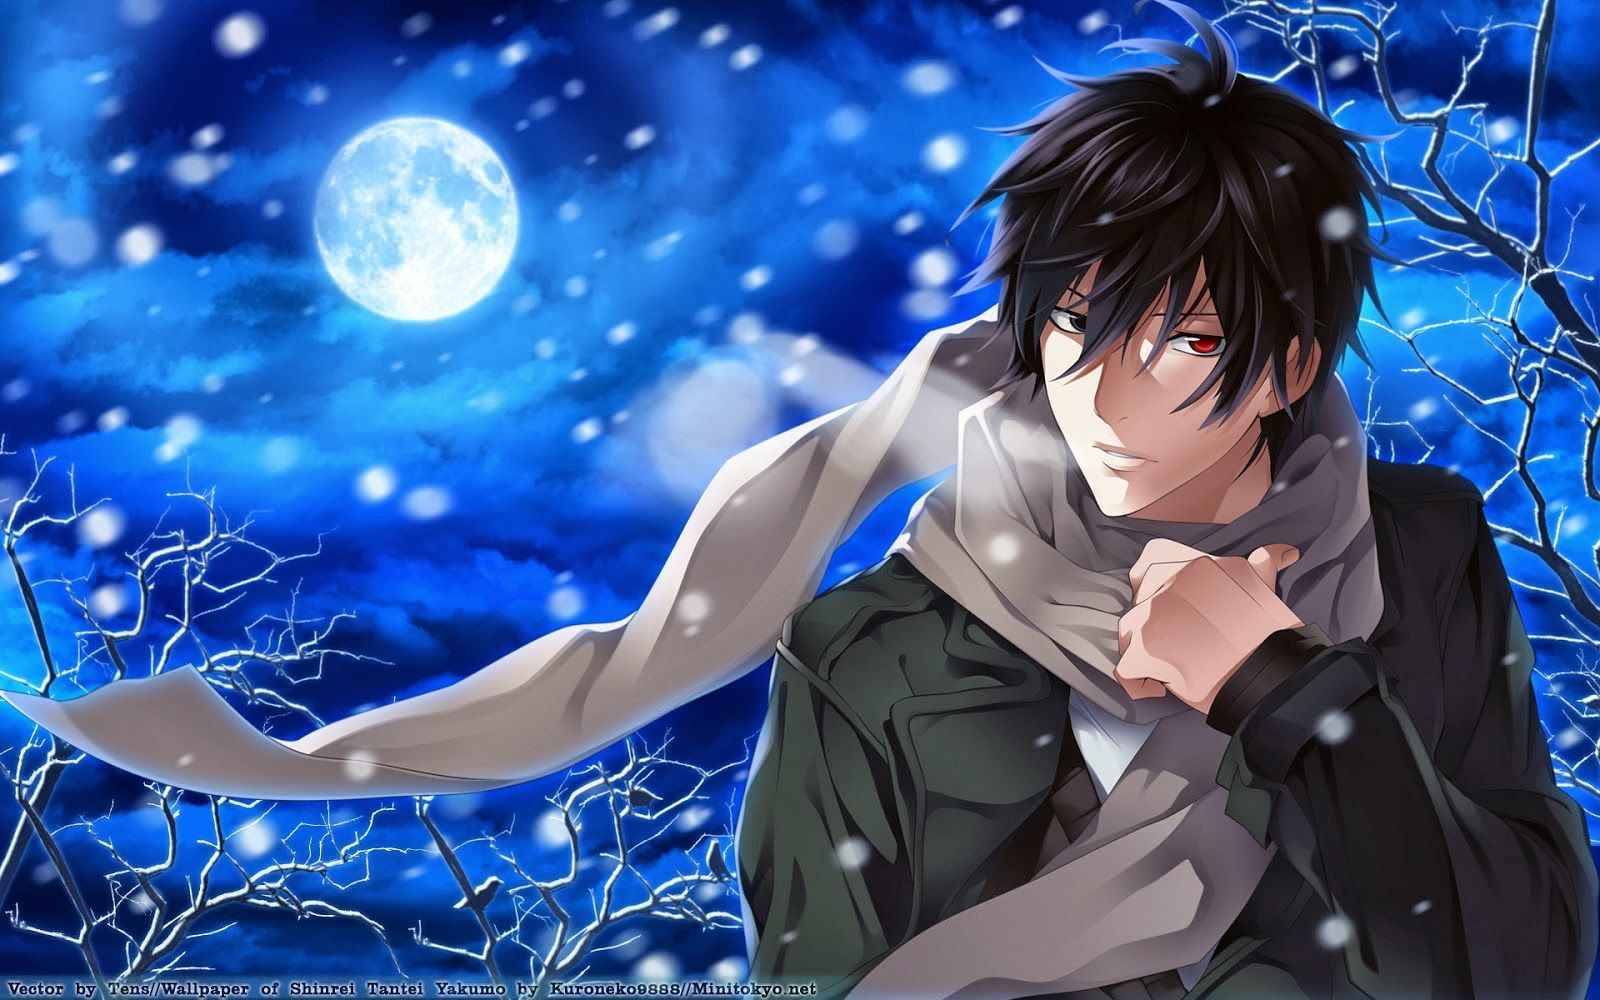 Winter Anime 3d Wallpaper Weve Gathered More Than 3 Million Images Uploaded By Our Users And Sorted Them By The Most Popular On Anime Boy Cute Anime Boy Anime